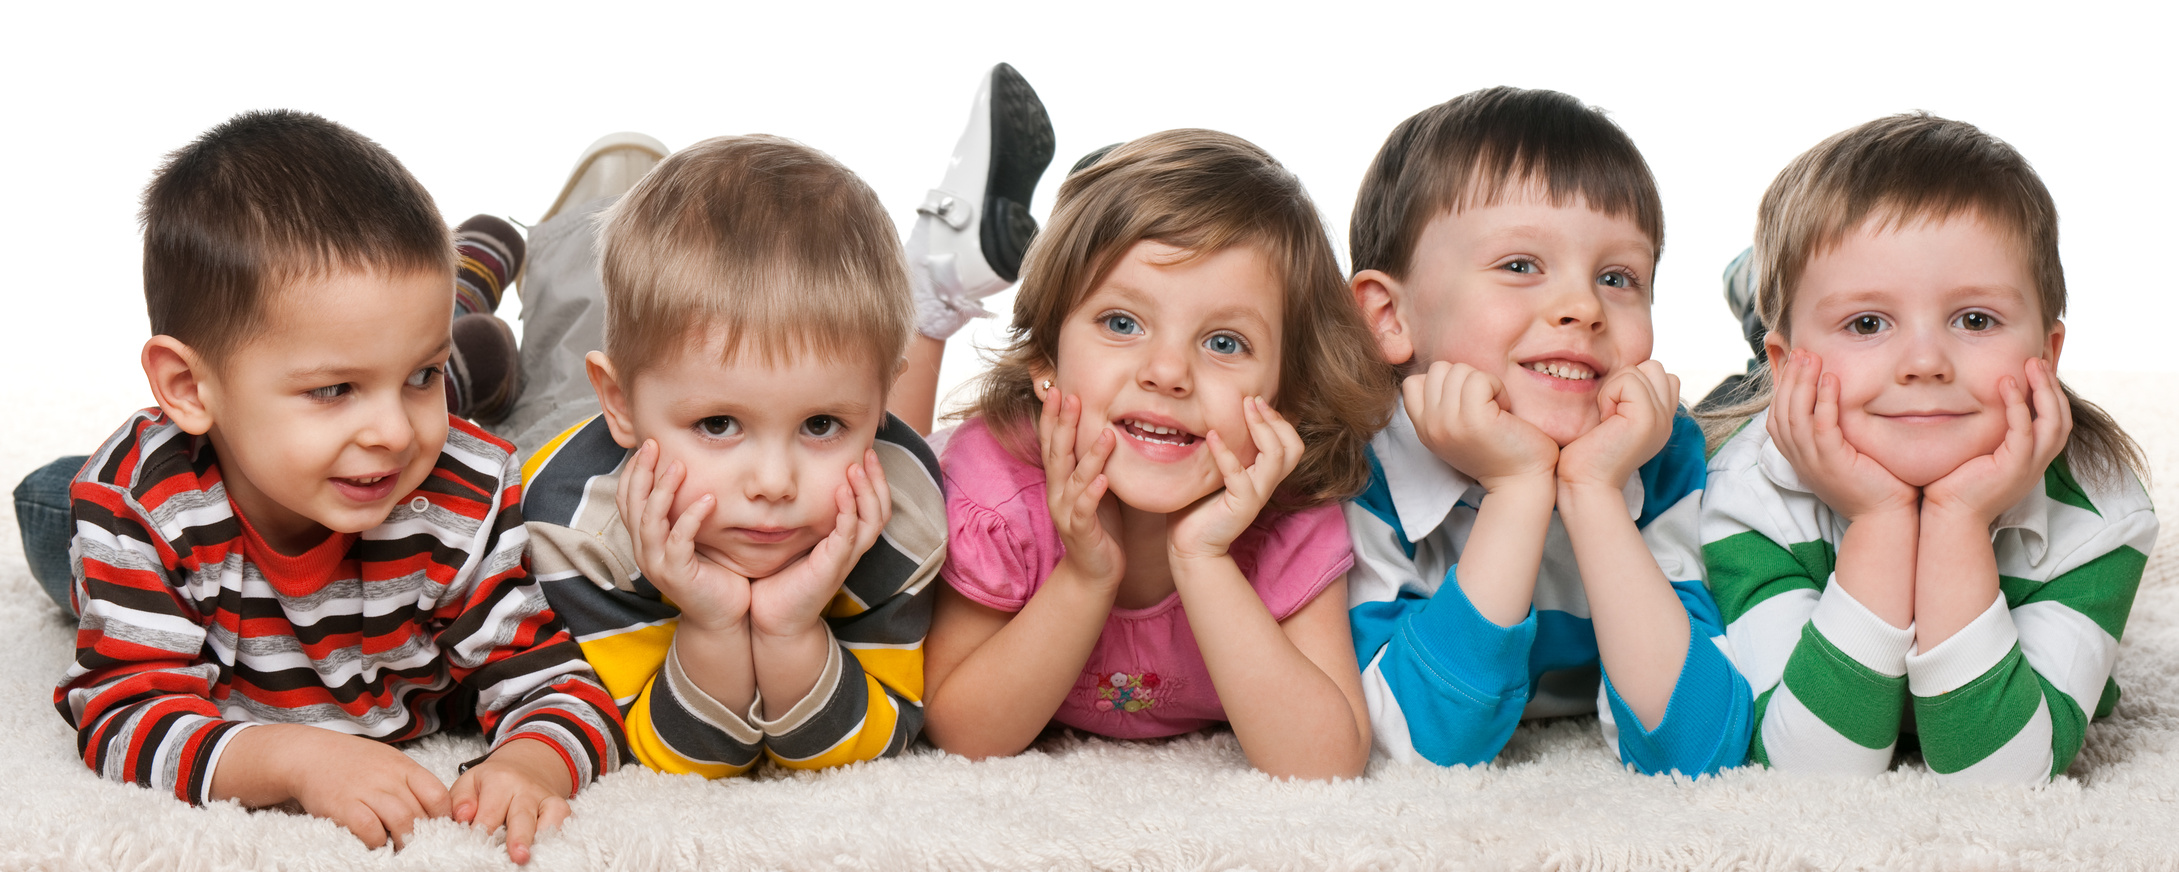 Empower Your Childs Caretakers With An Easy Behavioral